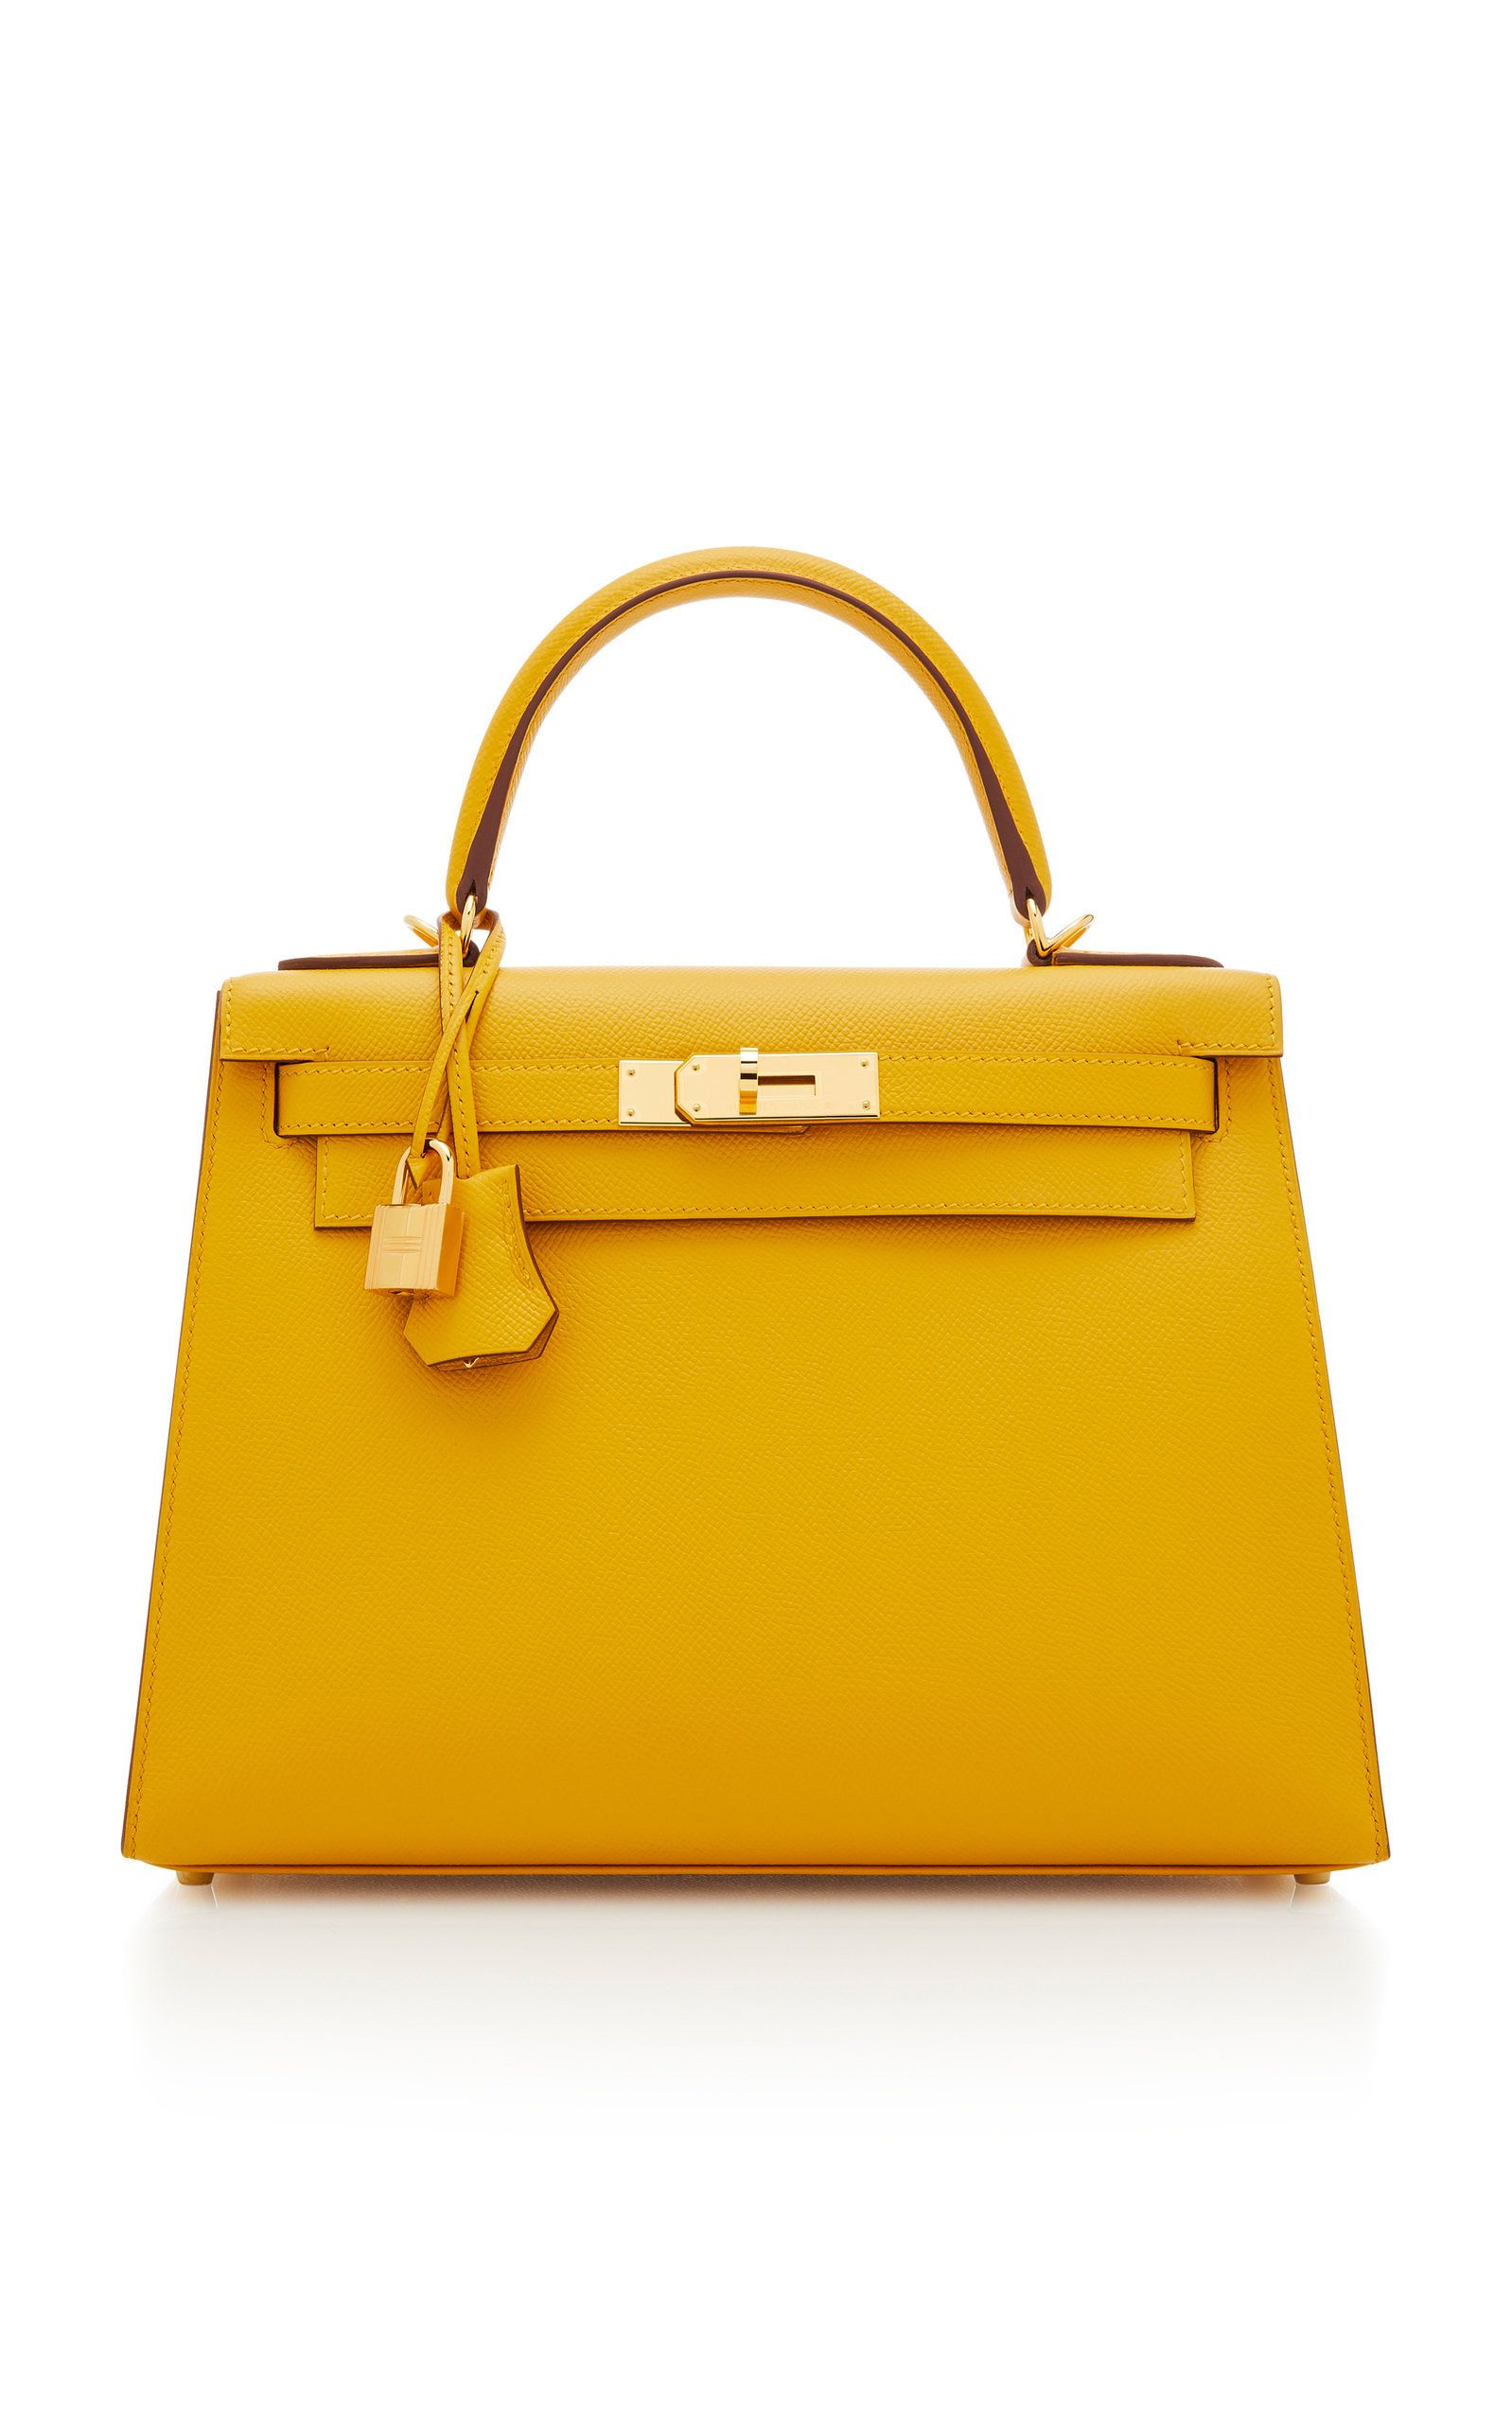 Hermes Jaune Ambre Epsom Leather Sellier Kelly by HERMES VINTAGE for  Preorder on Moda Operandi 848519c07f64a